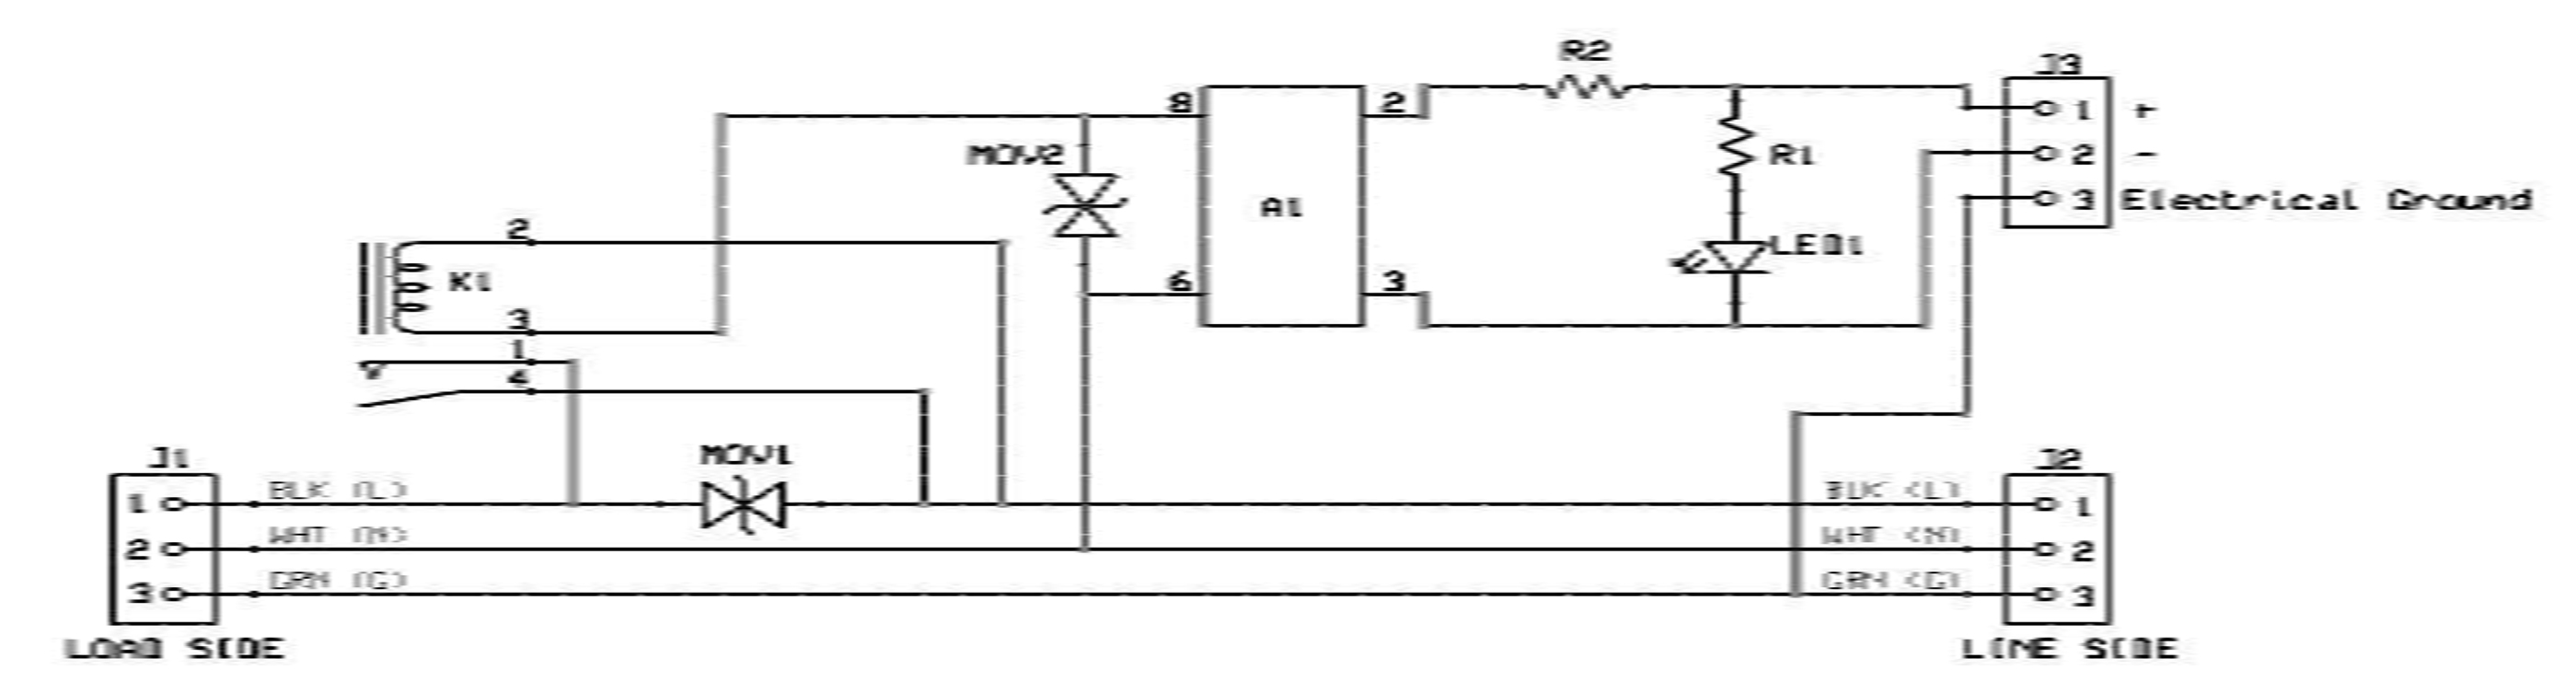 Drivers Relays And Solid State Mbed Relay Circuit Working Power Switch Tail Ii Schematic